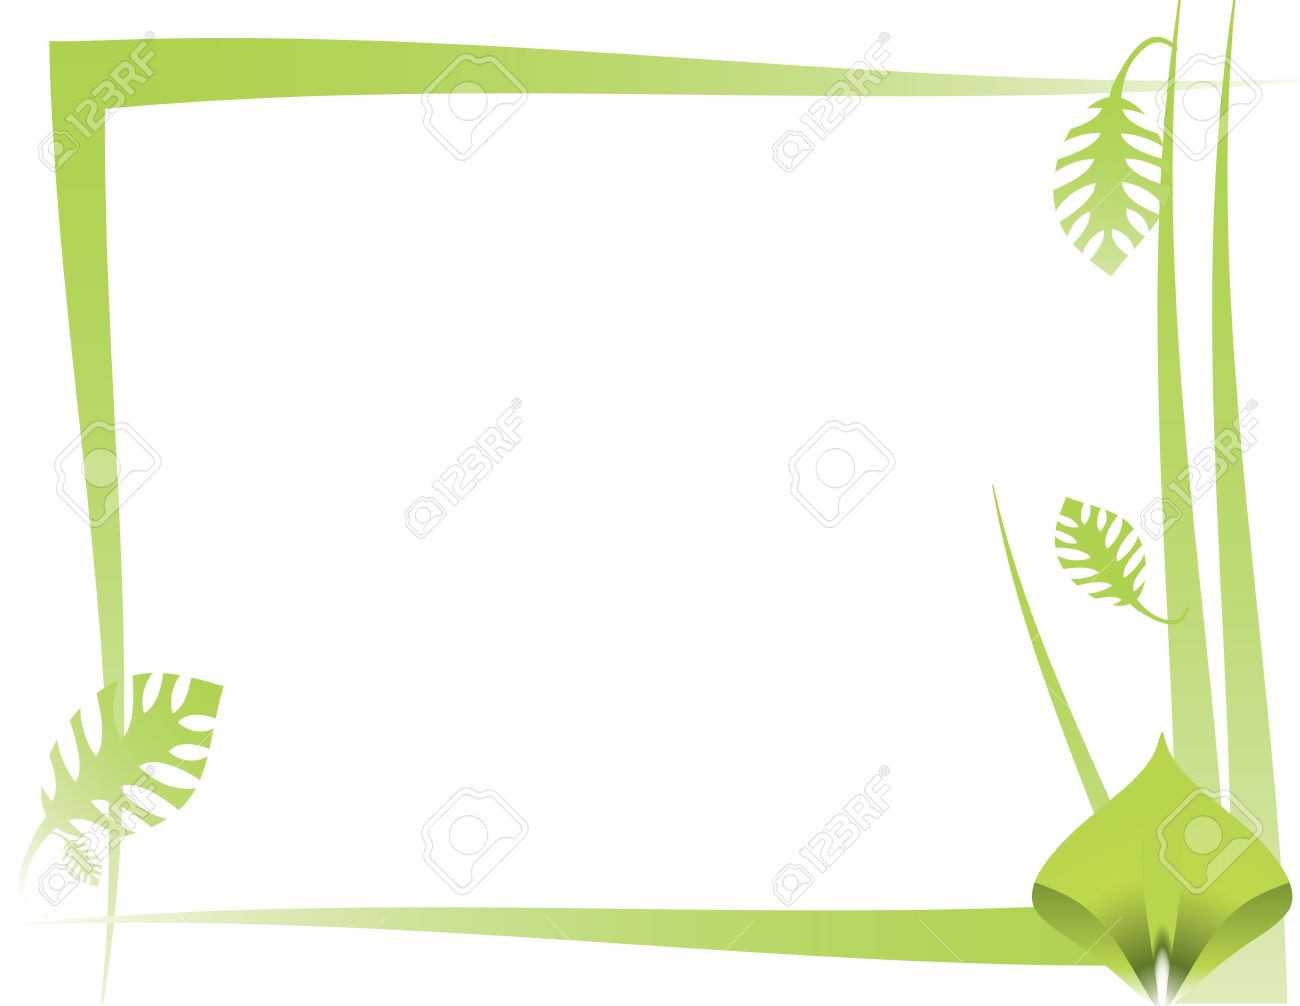 green leaf and abstract frame design on a white background stock photo 4067486